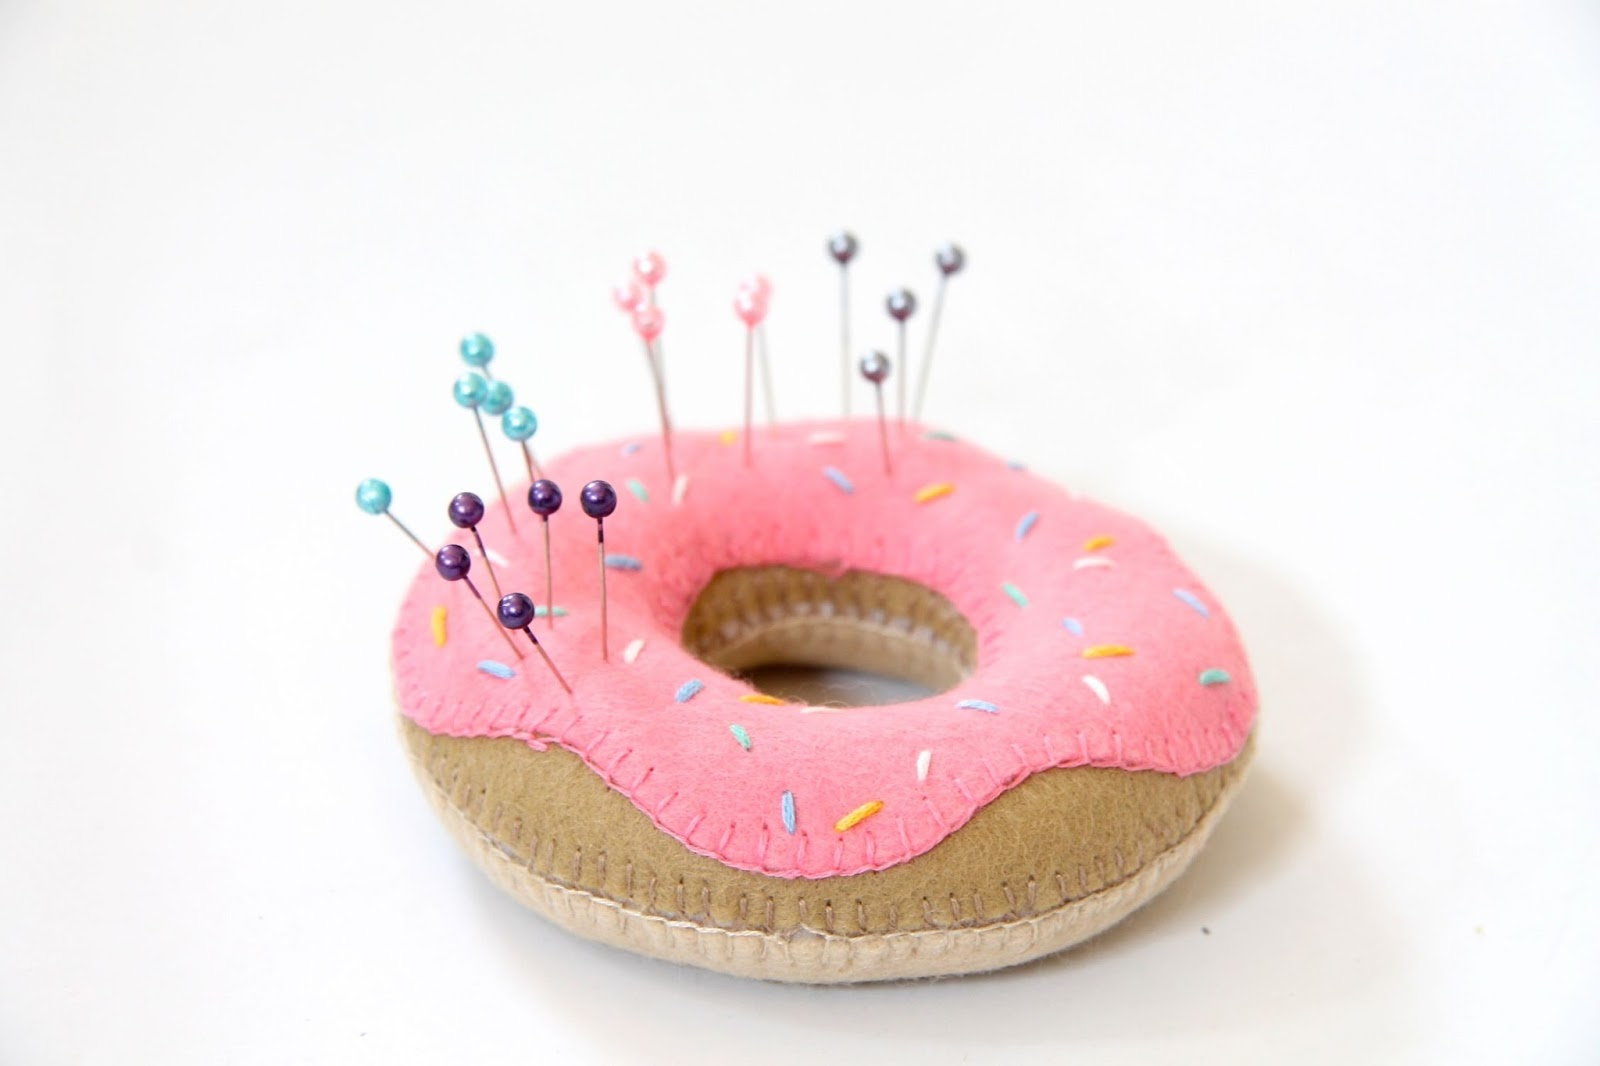 DIY Felt Doughnut Pin Cushion Tutorial